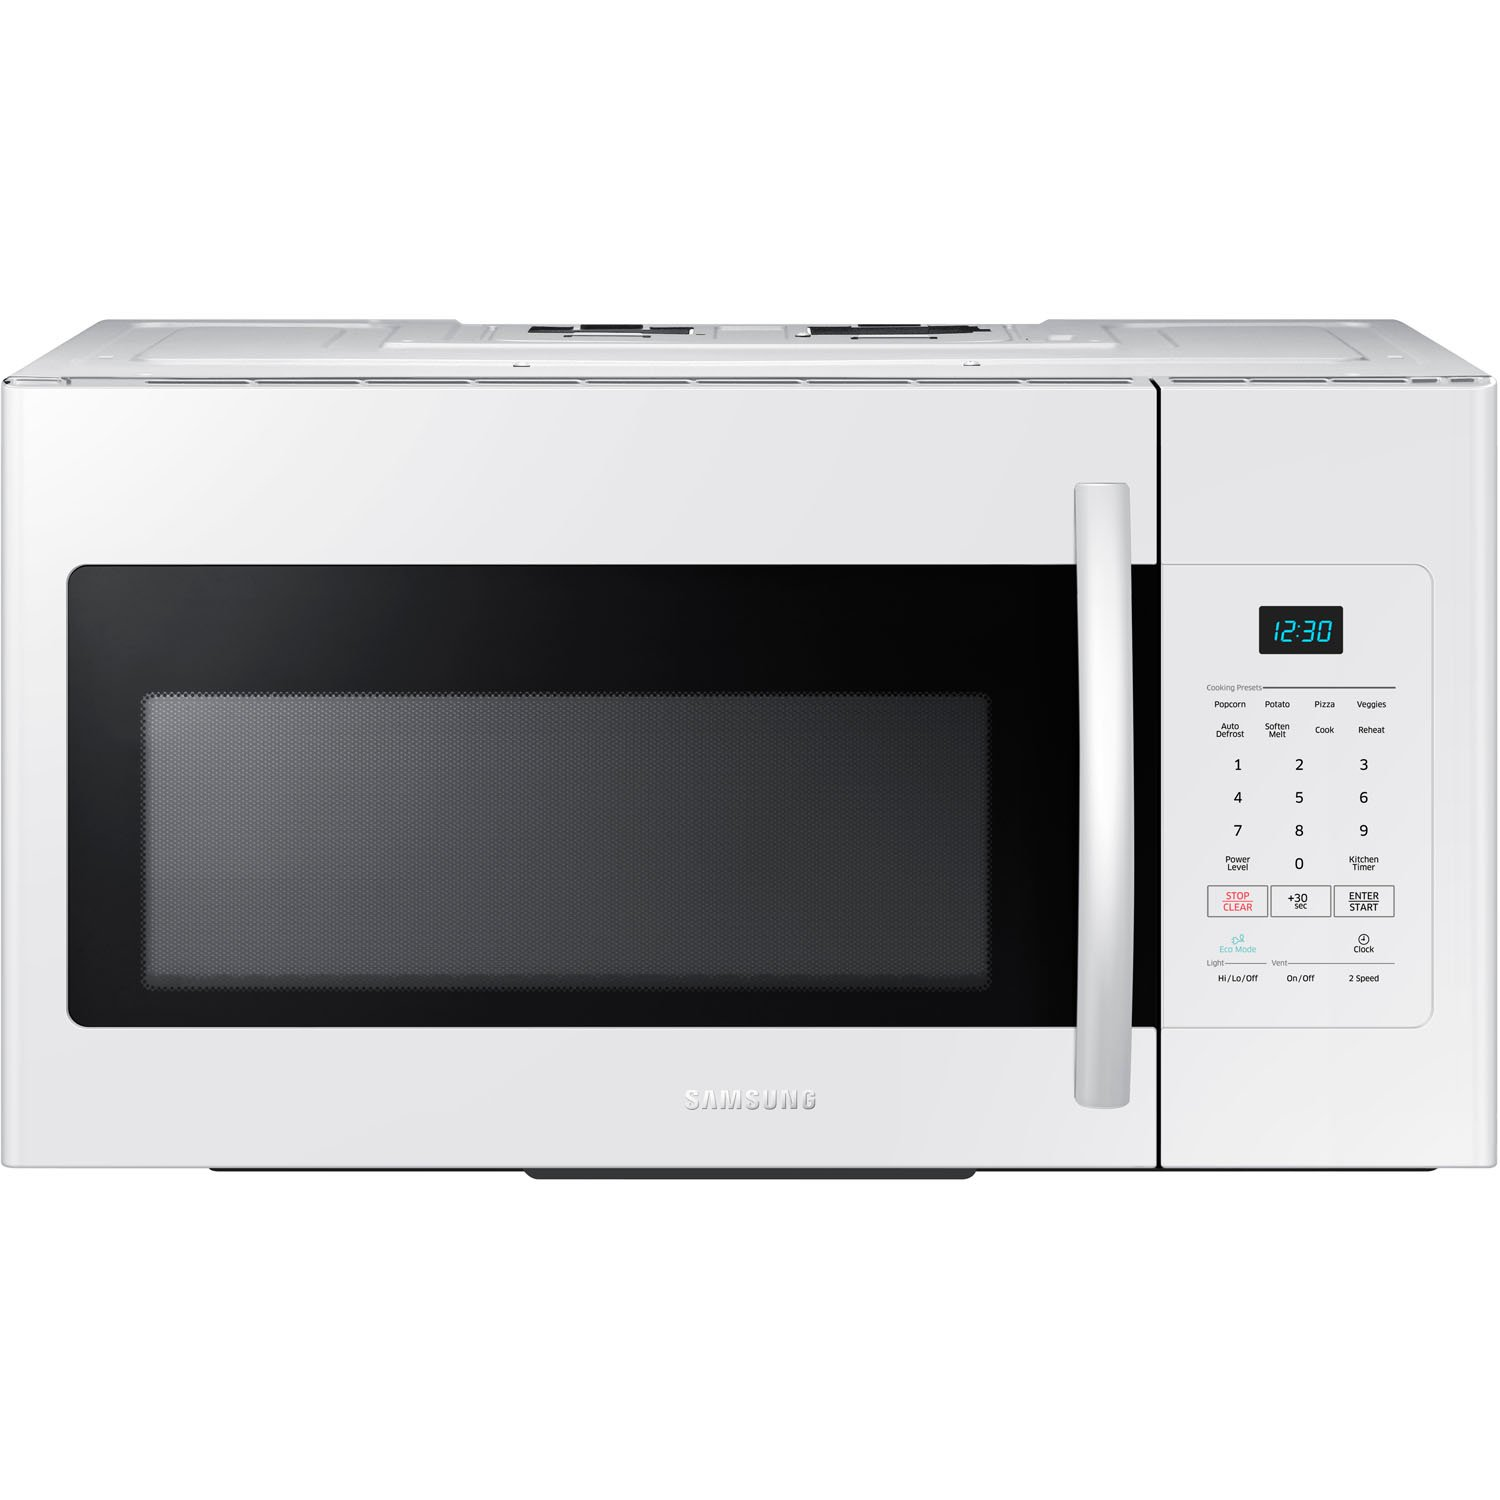 Samsung ME16H702SEW 1.6 Cu. Ft. 1000W Over-the-Range Microwave, White by Samsung